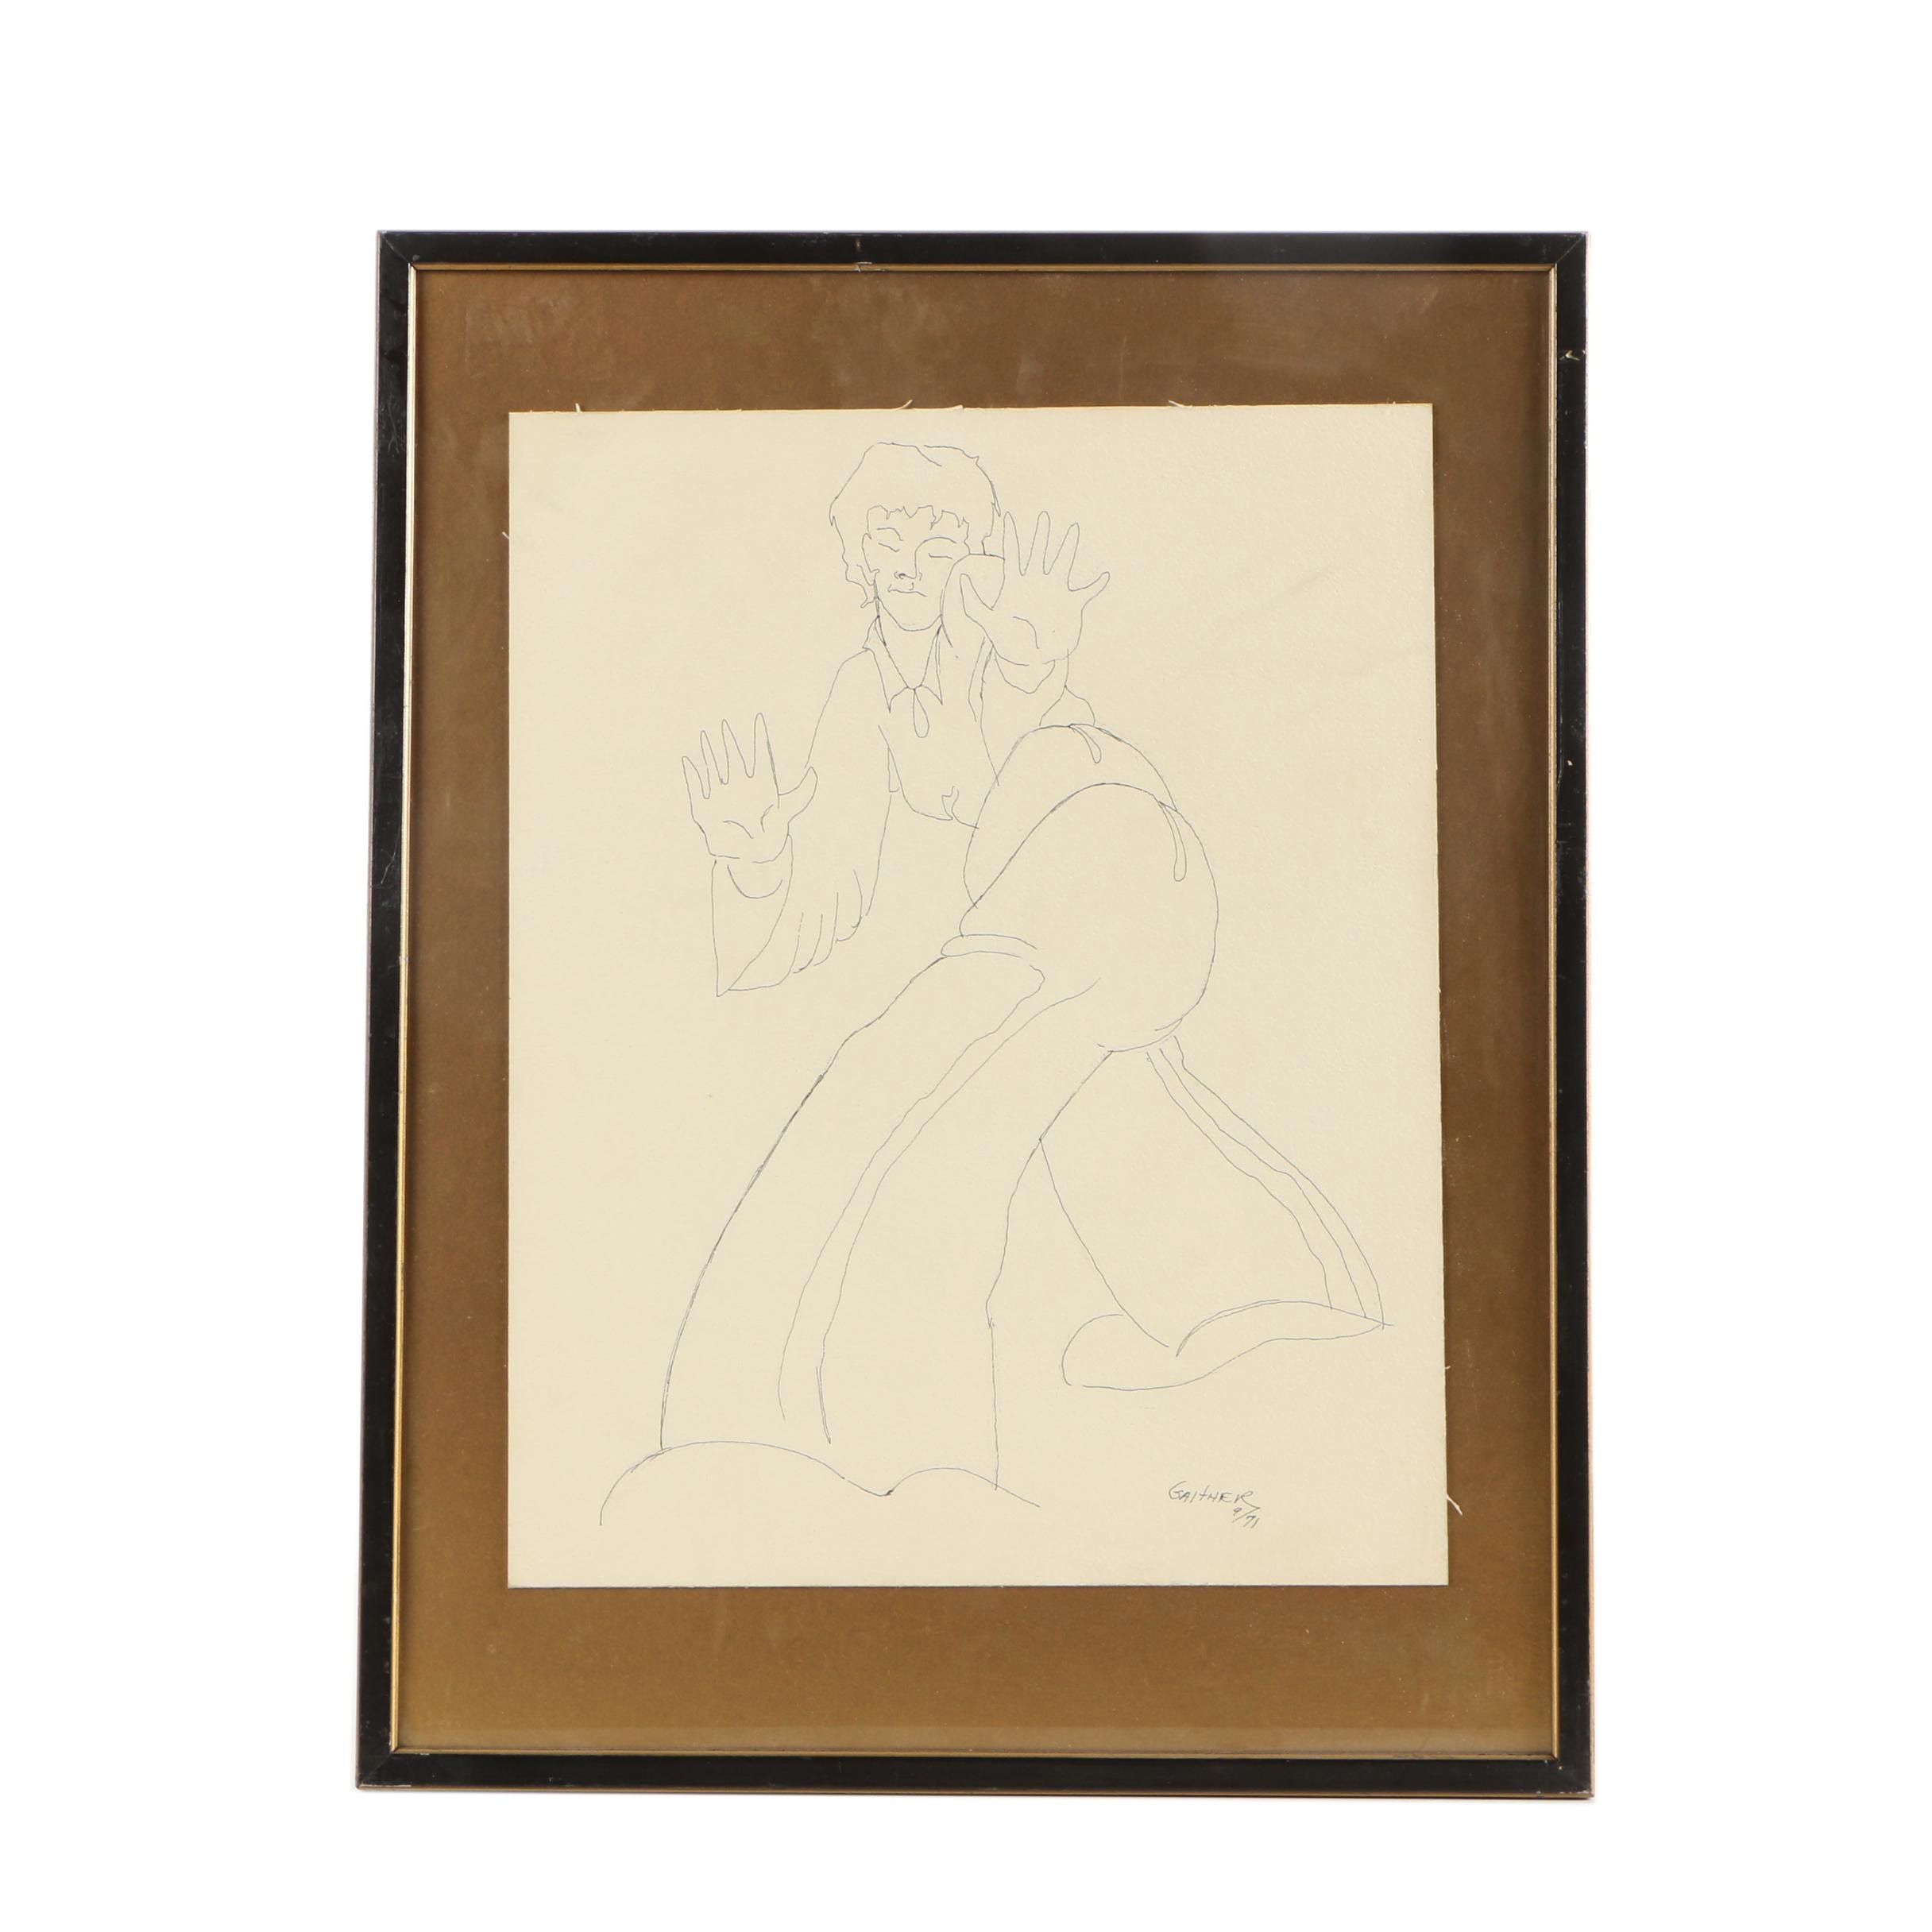 1971 Gaither Ink Drawing